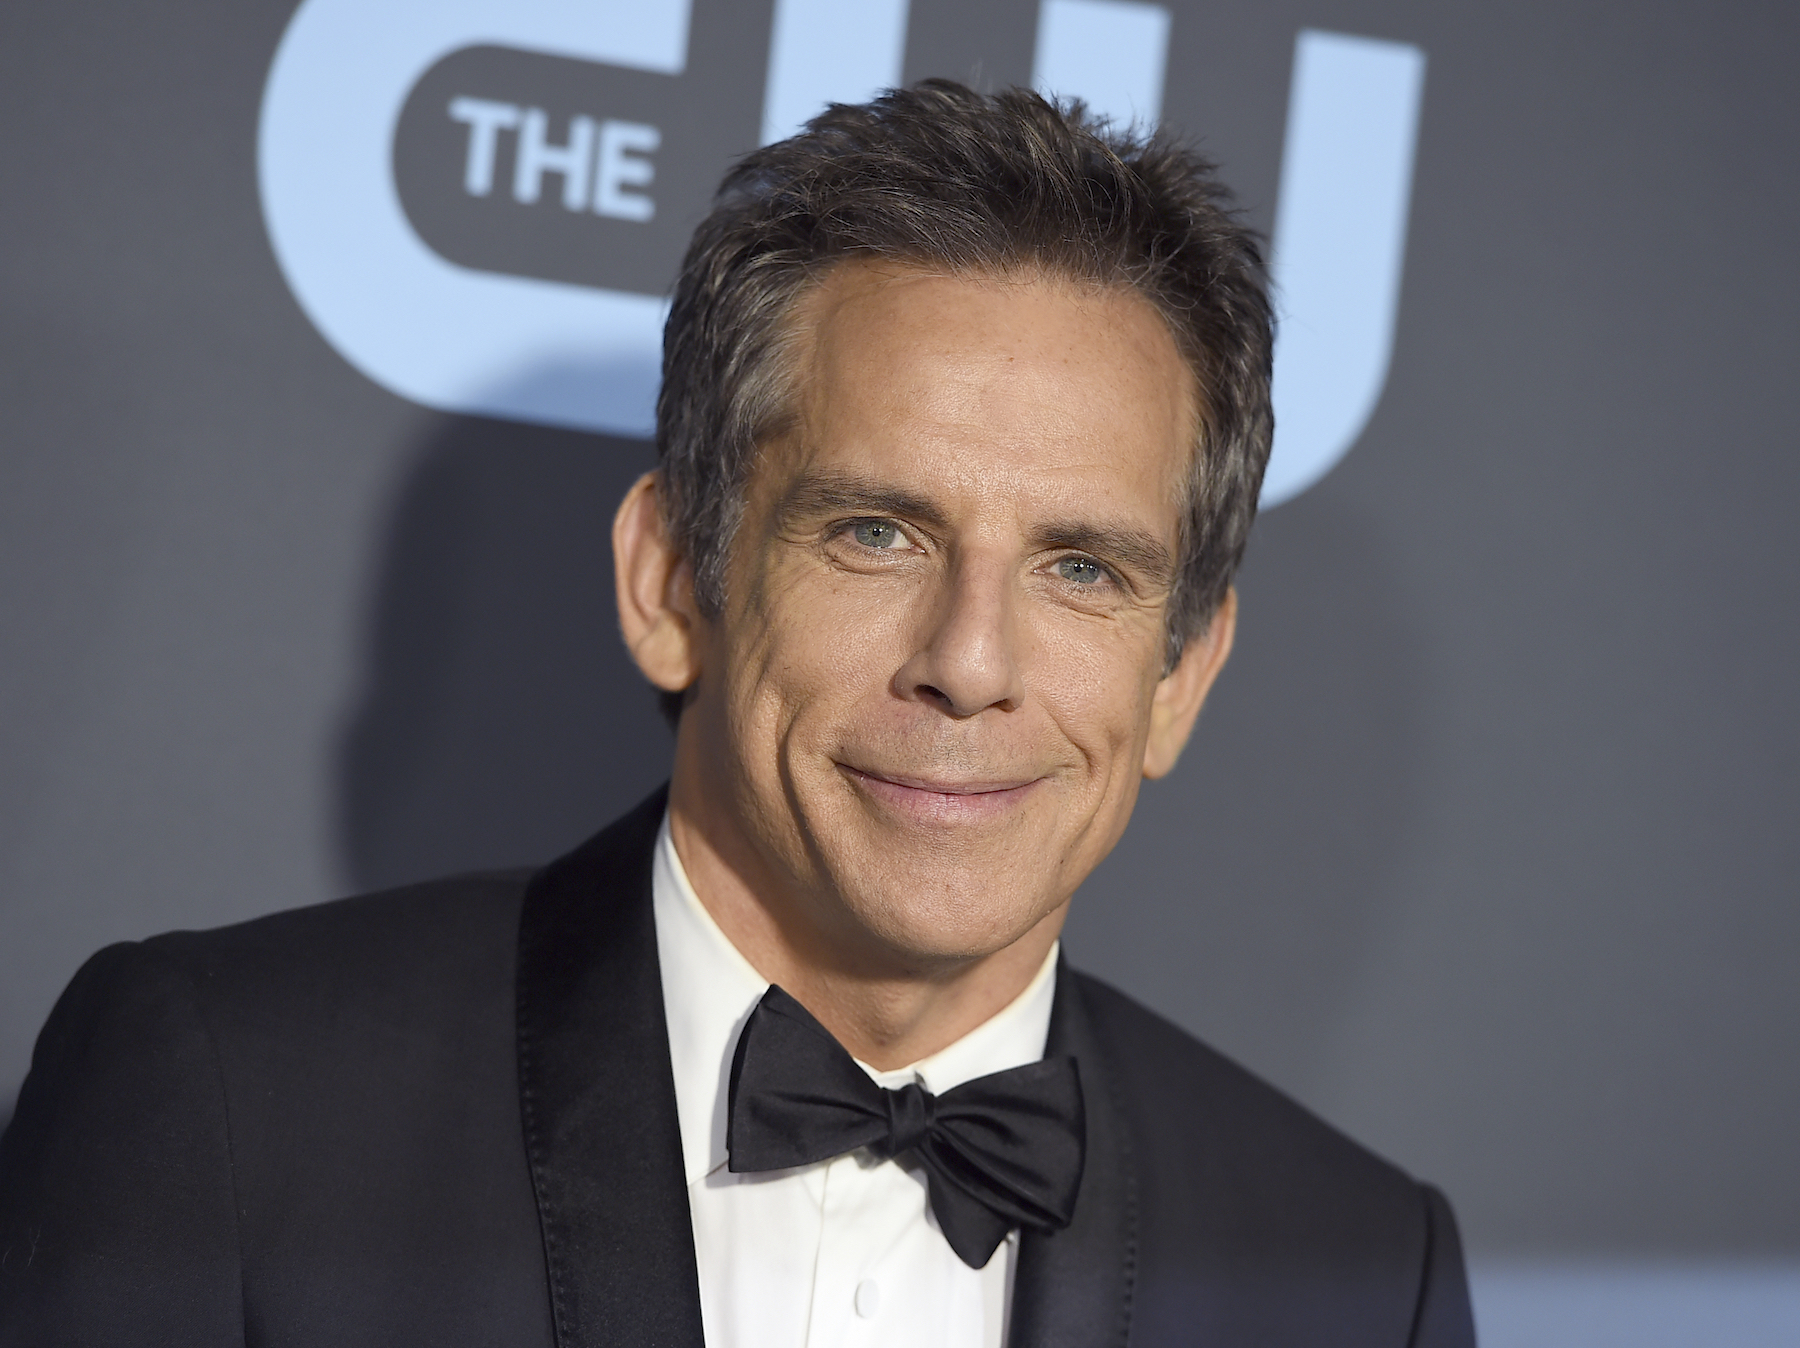 <div class='meta'><div class='origin-logo' data-origin='AP'></div><span class='caption-text' data-credit='Jordan Strauss/Invision/AP'>Ben Stiller arrives at the 24th annual Critics' Choice Awards on Sunday, Jan. 13, 2019, at the Barker Hangar in Santa Monica, Calif.</span></div>